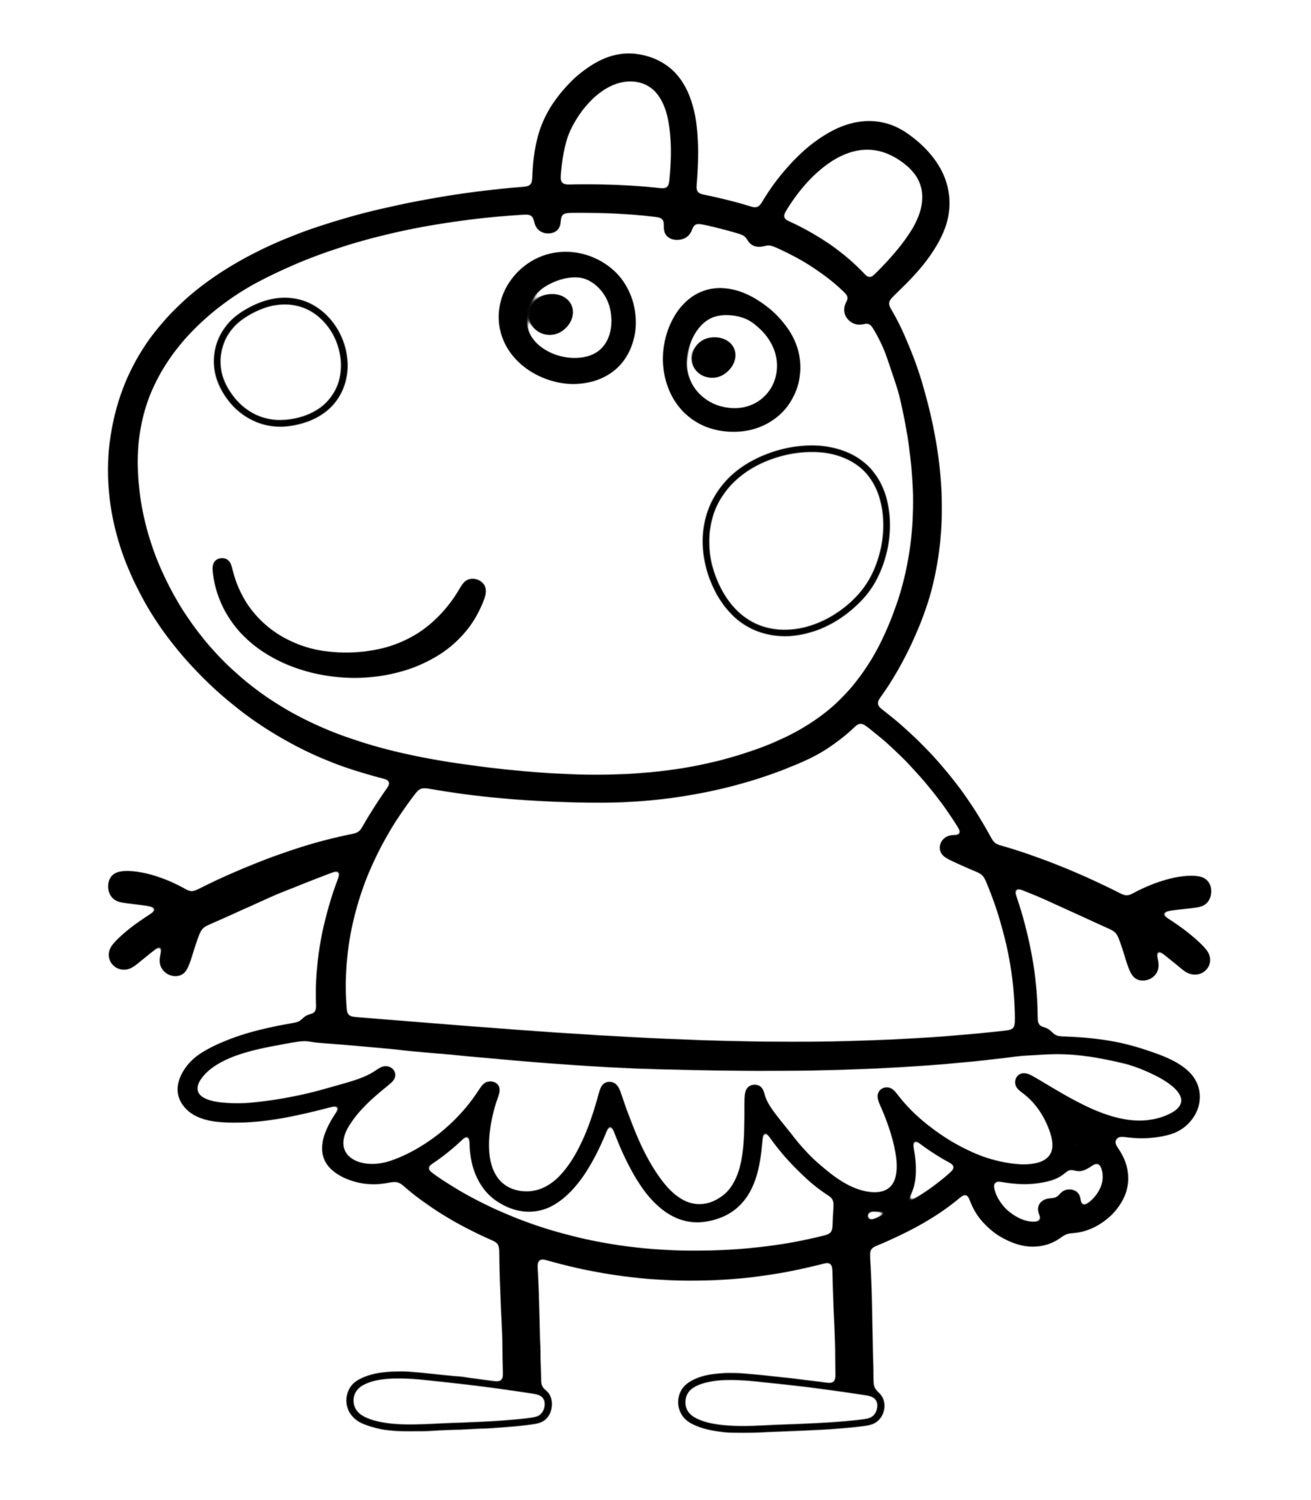 Suzy Sheep In Peppa Pig Coloring Page Peppa Pig Colouring Peppa